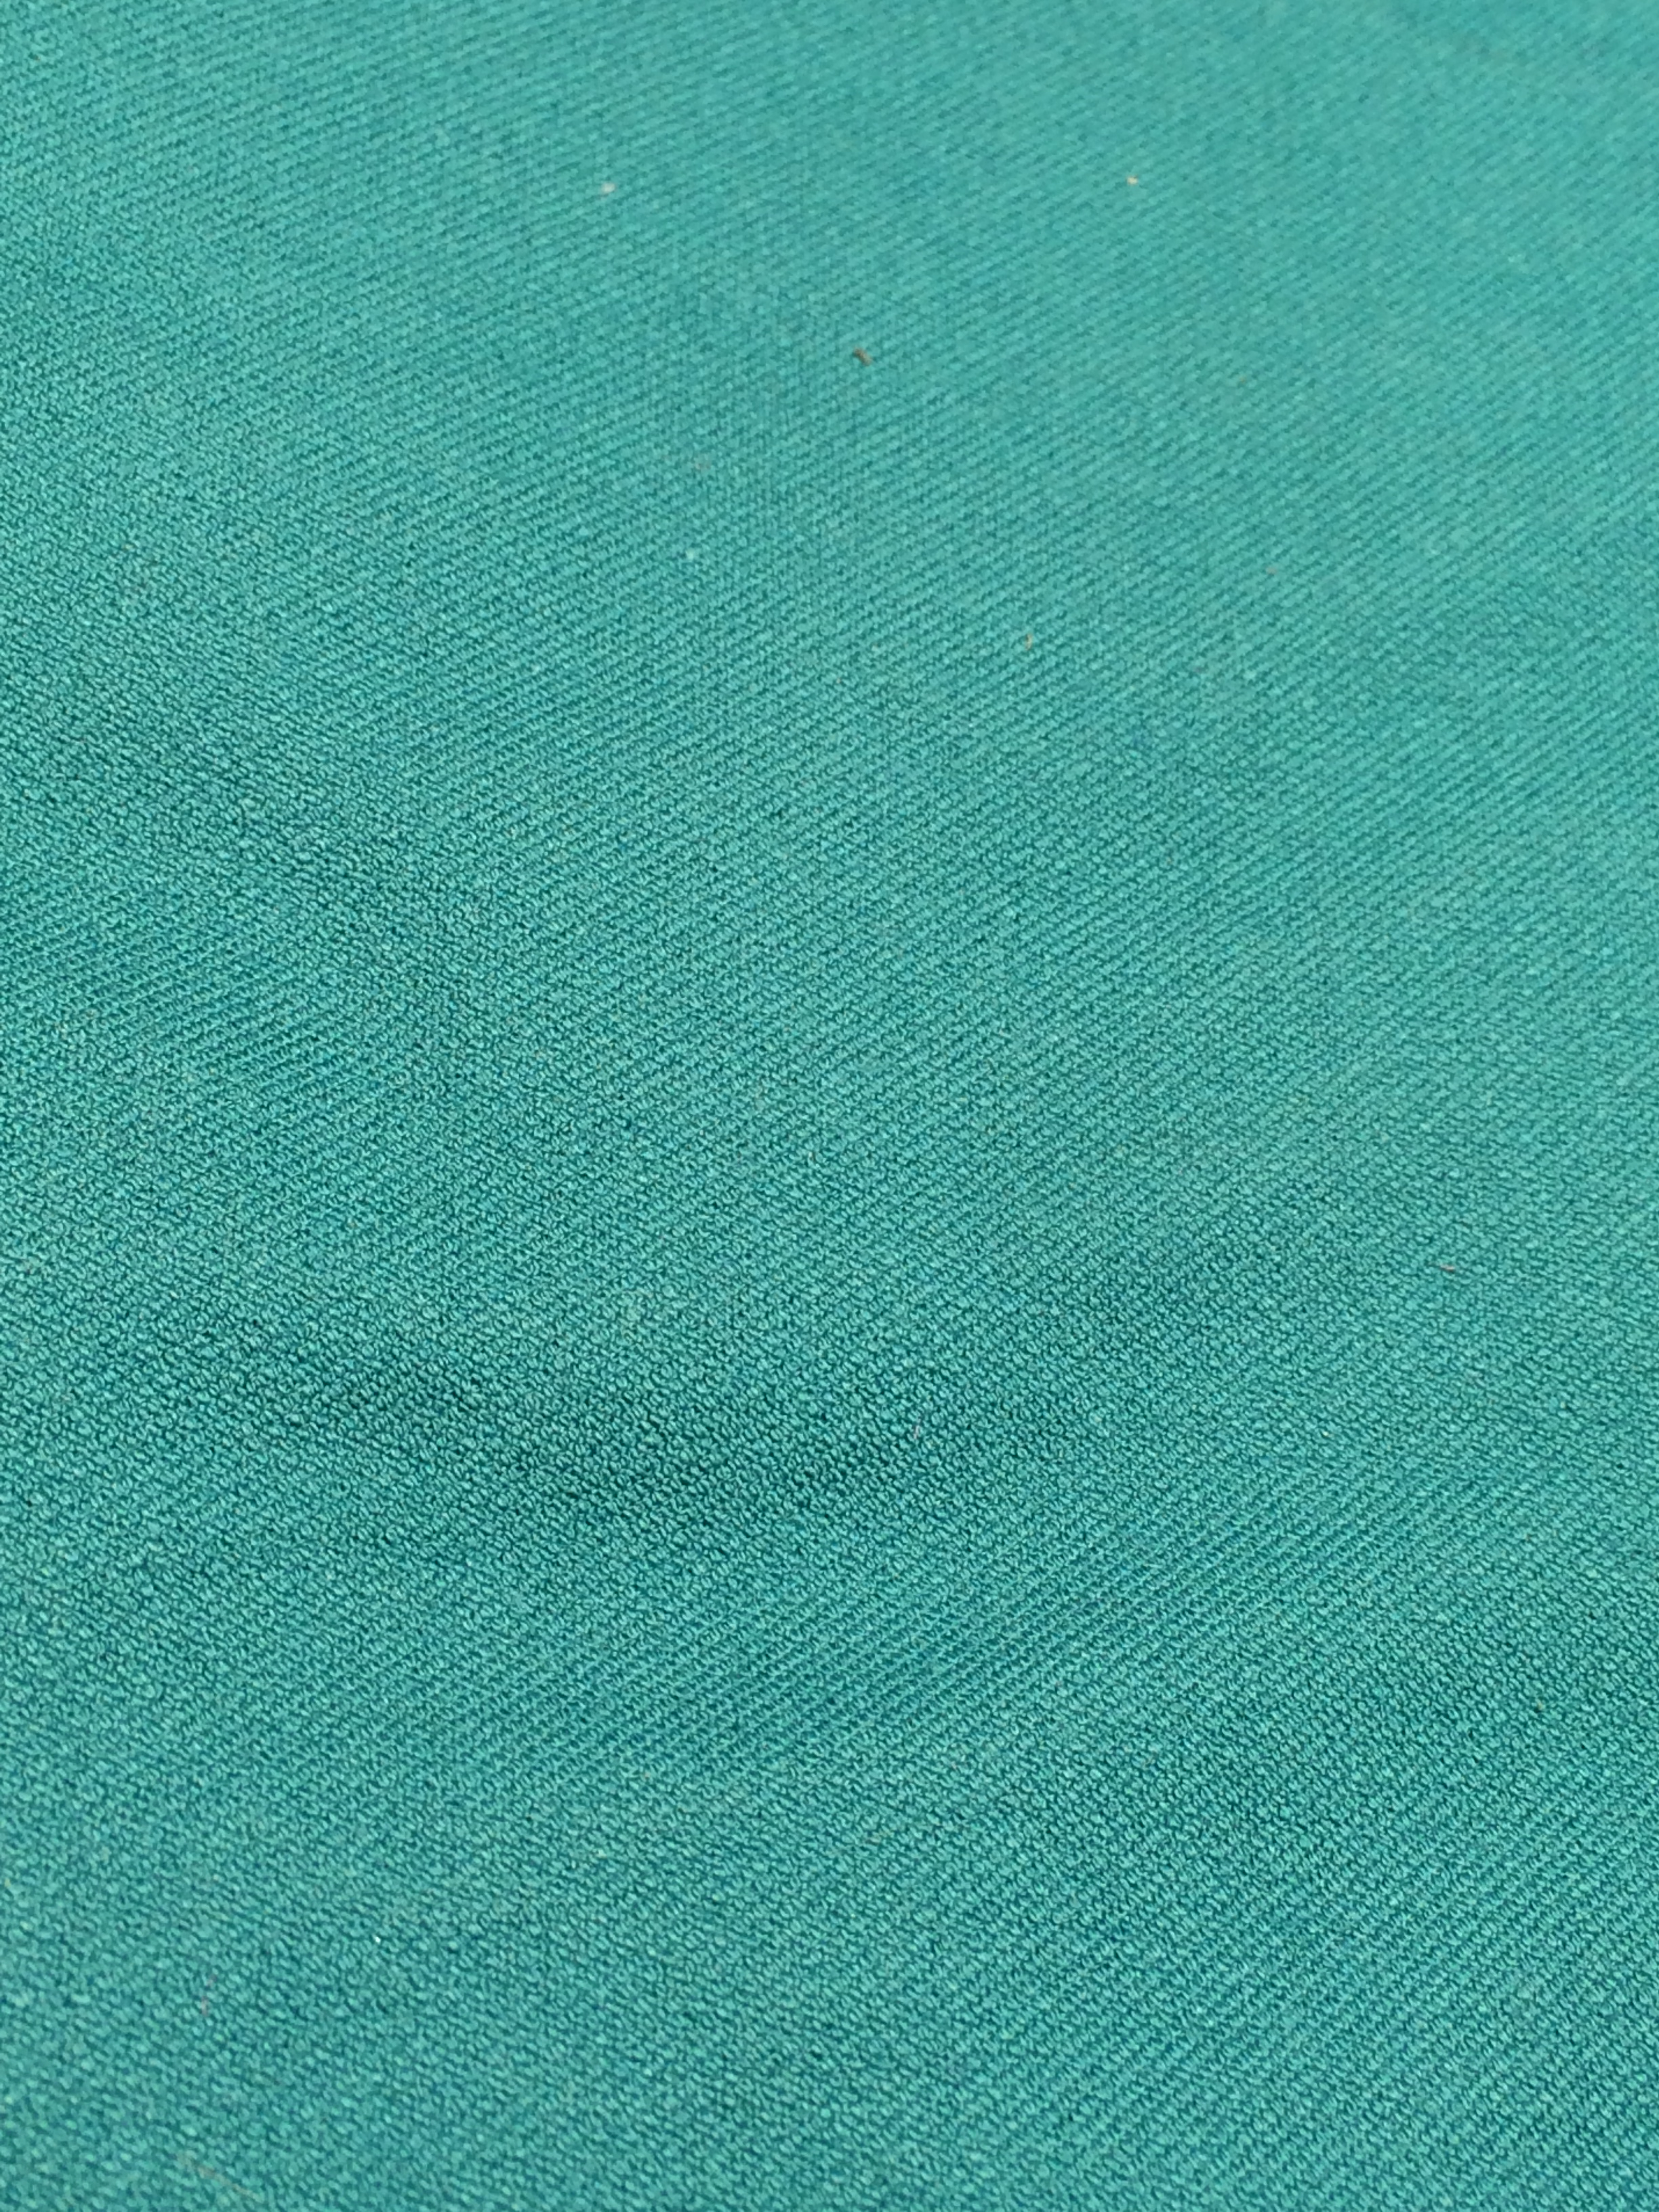 turquoise cotton with elastane